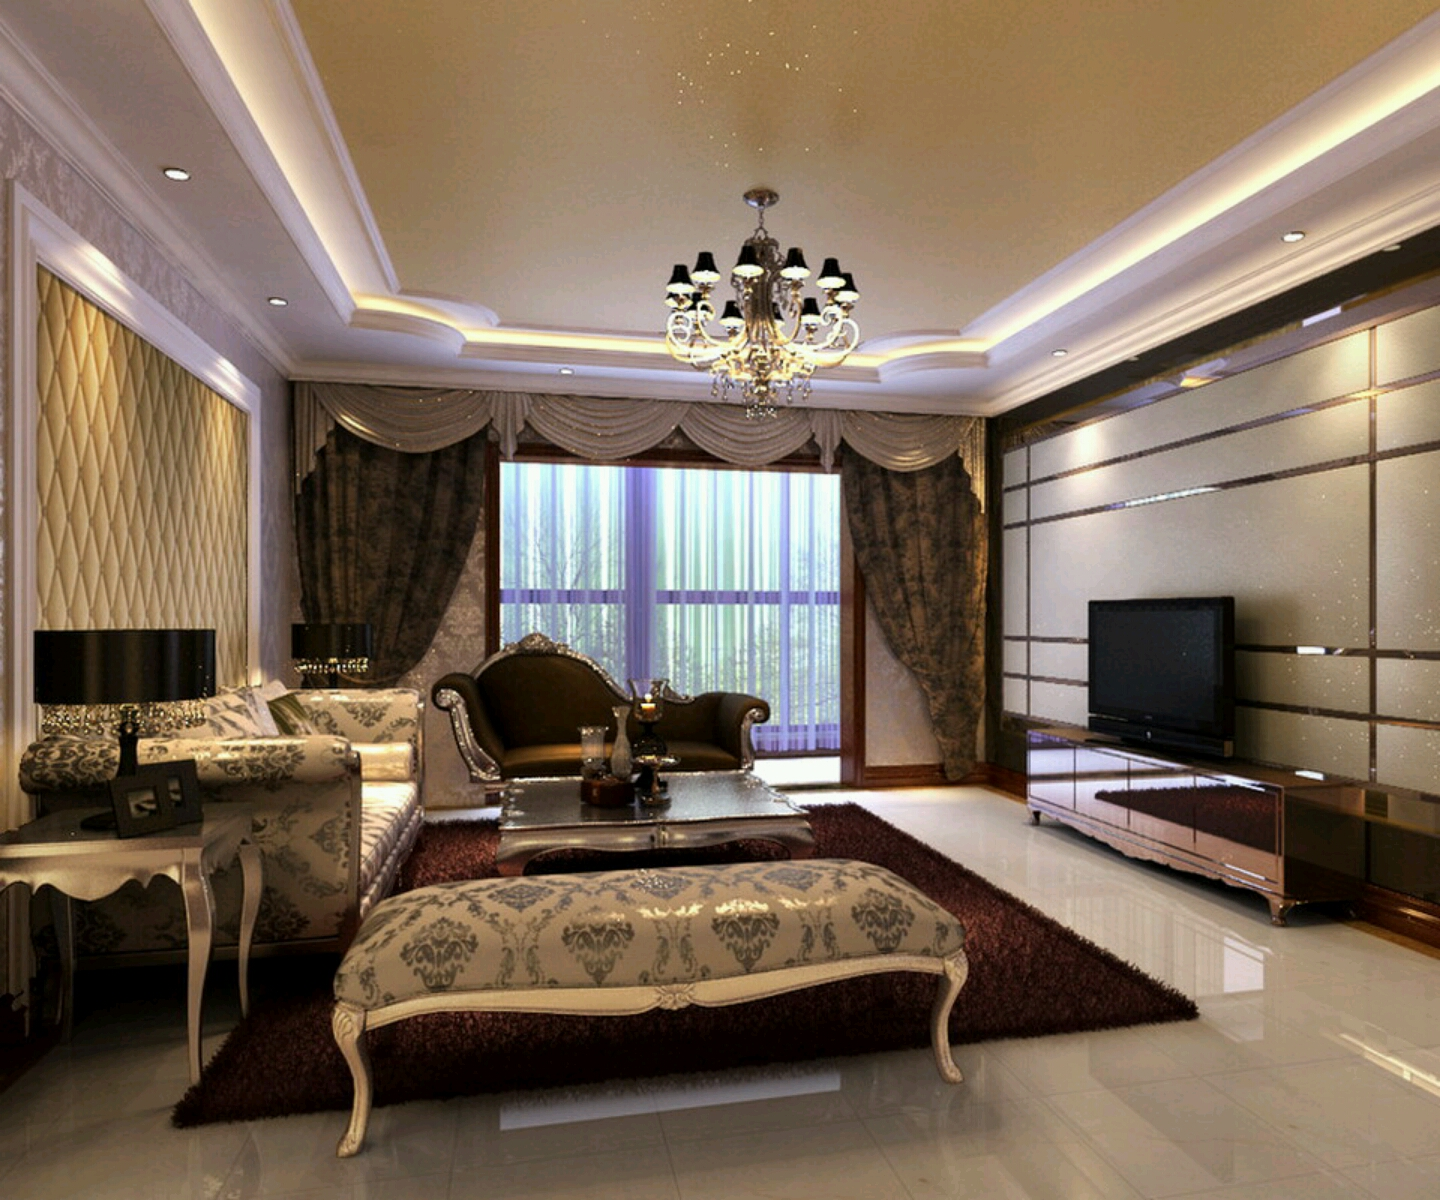 New home designs latest.: Luxury homes interior decoration living room